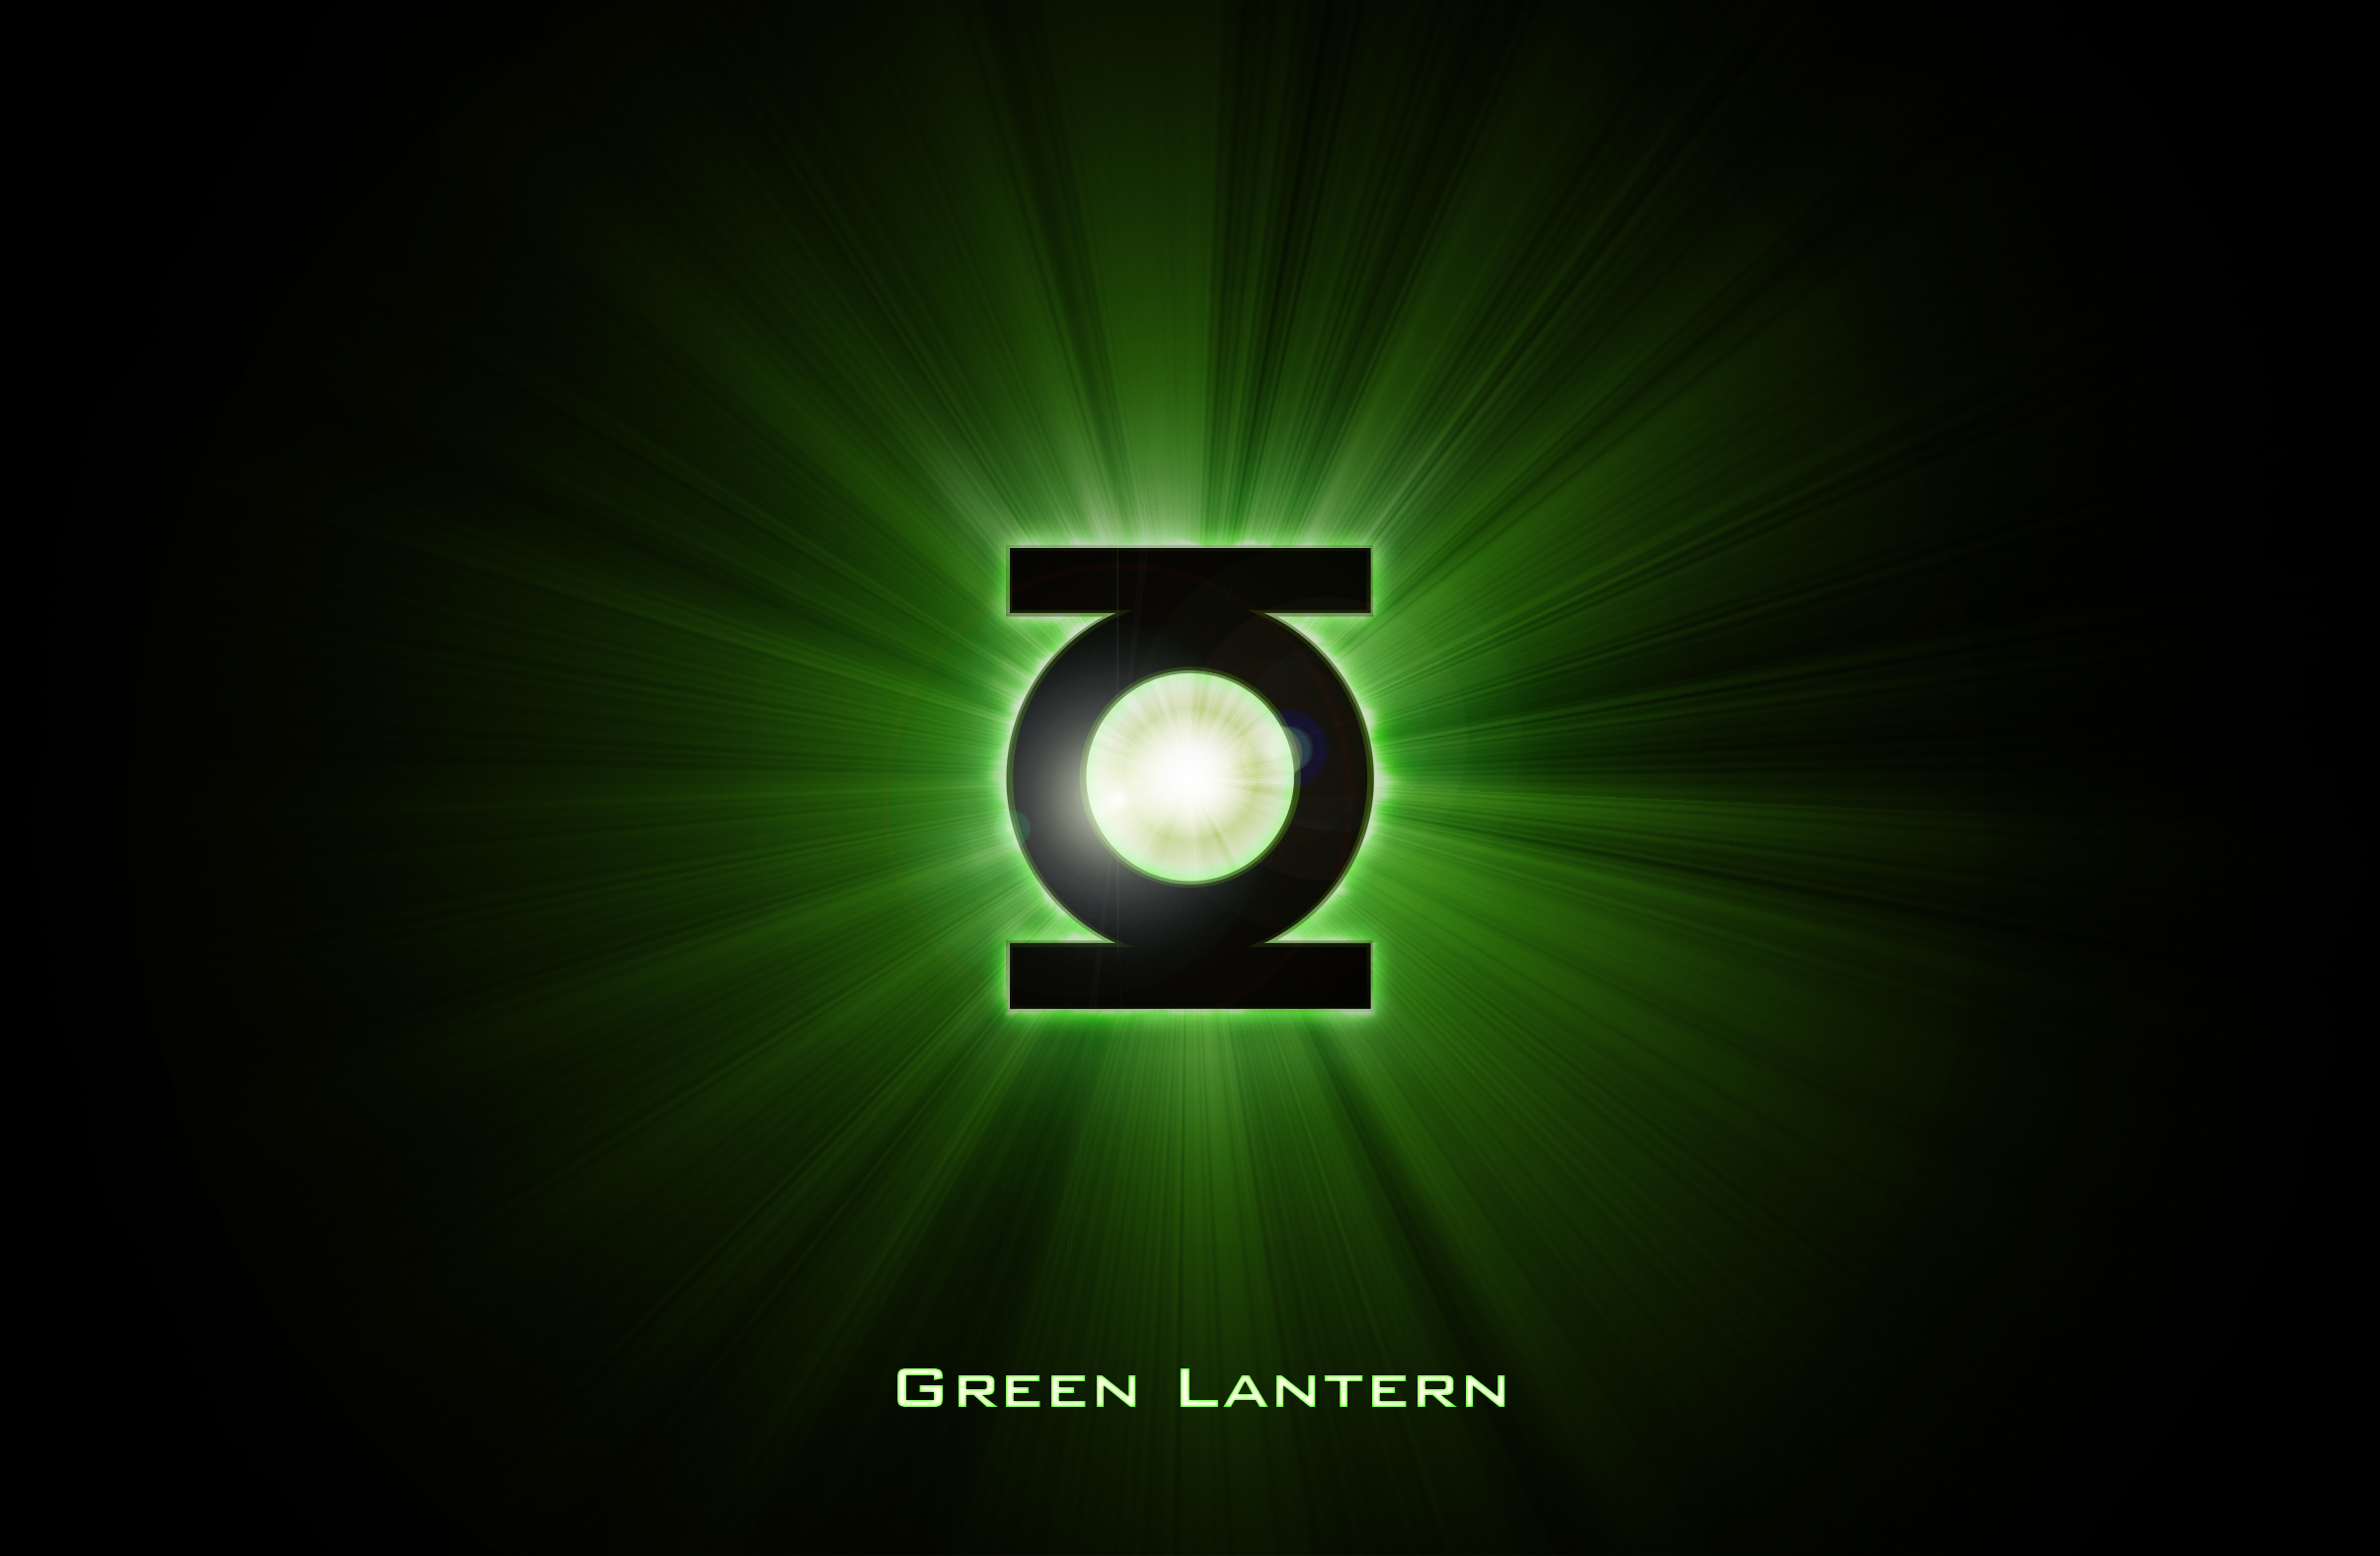 More Green Lantern wallpapers DC Comics wallpapers 2411x1576